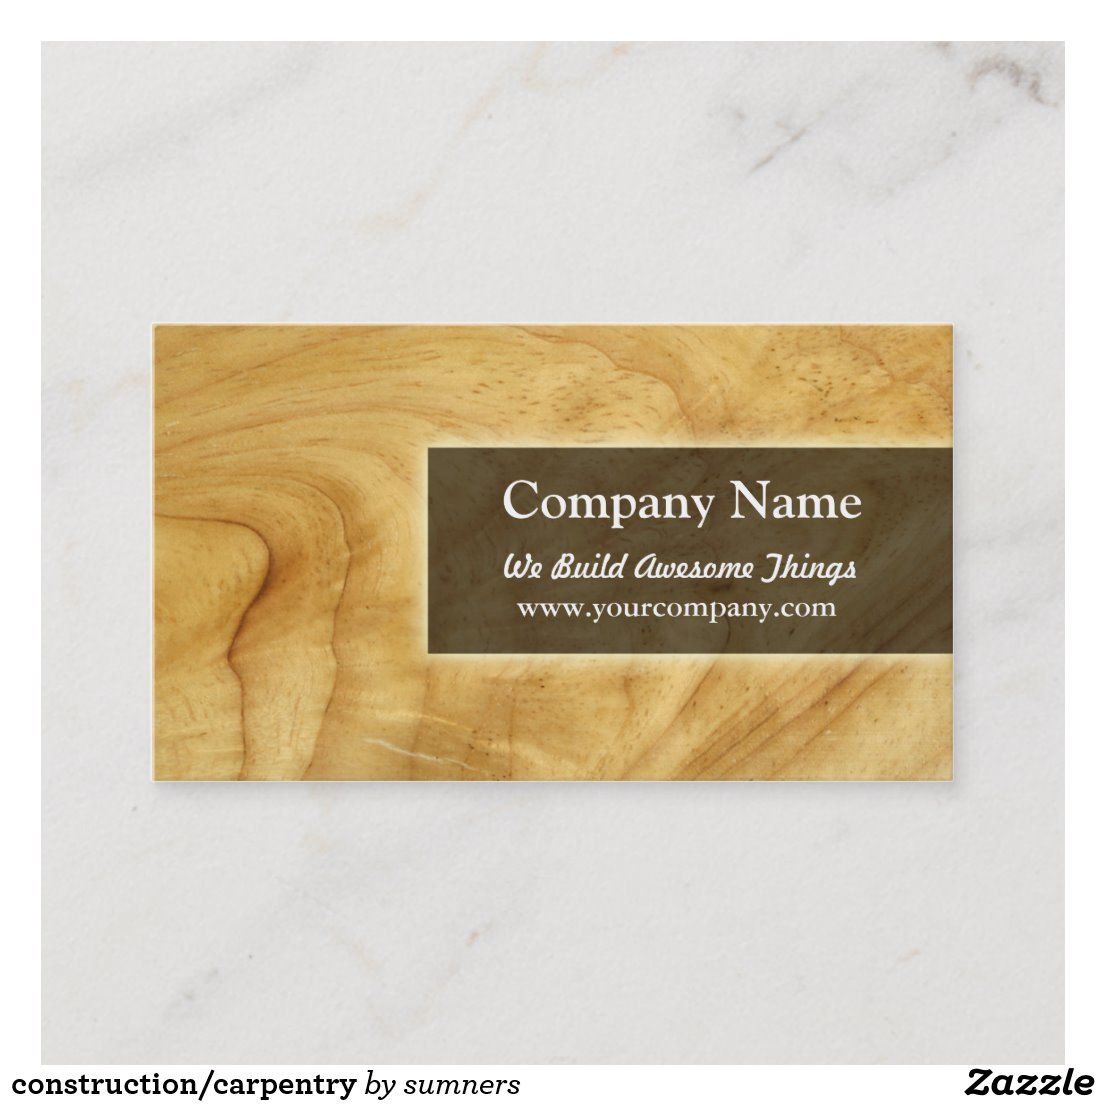 Construction Carpentry Business Card Zazzle Com Carpentry Wood Working Gifts Gifts For Carpenters